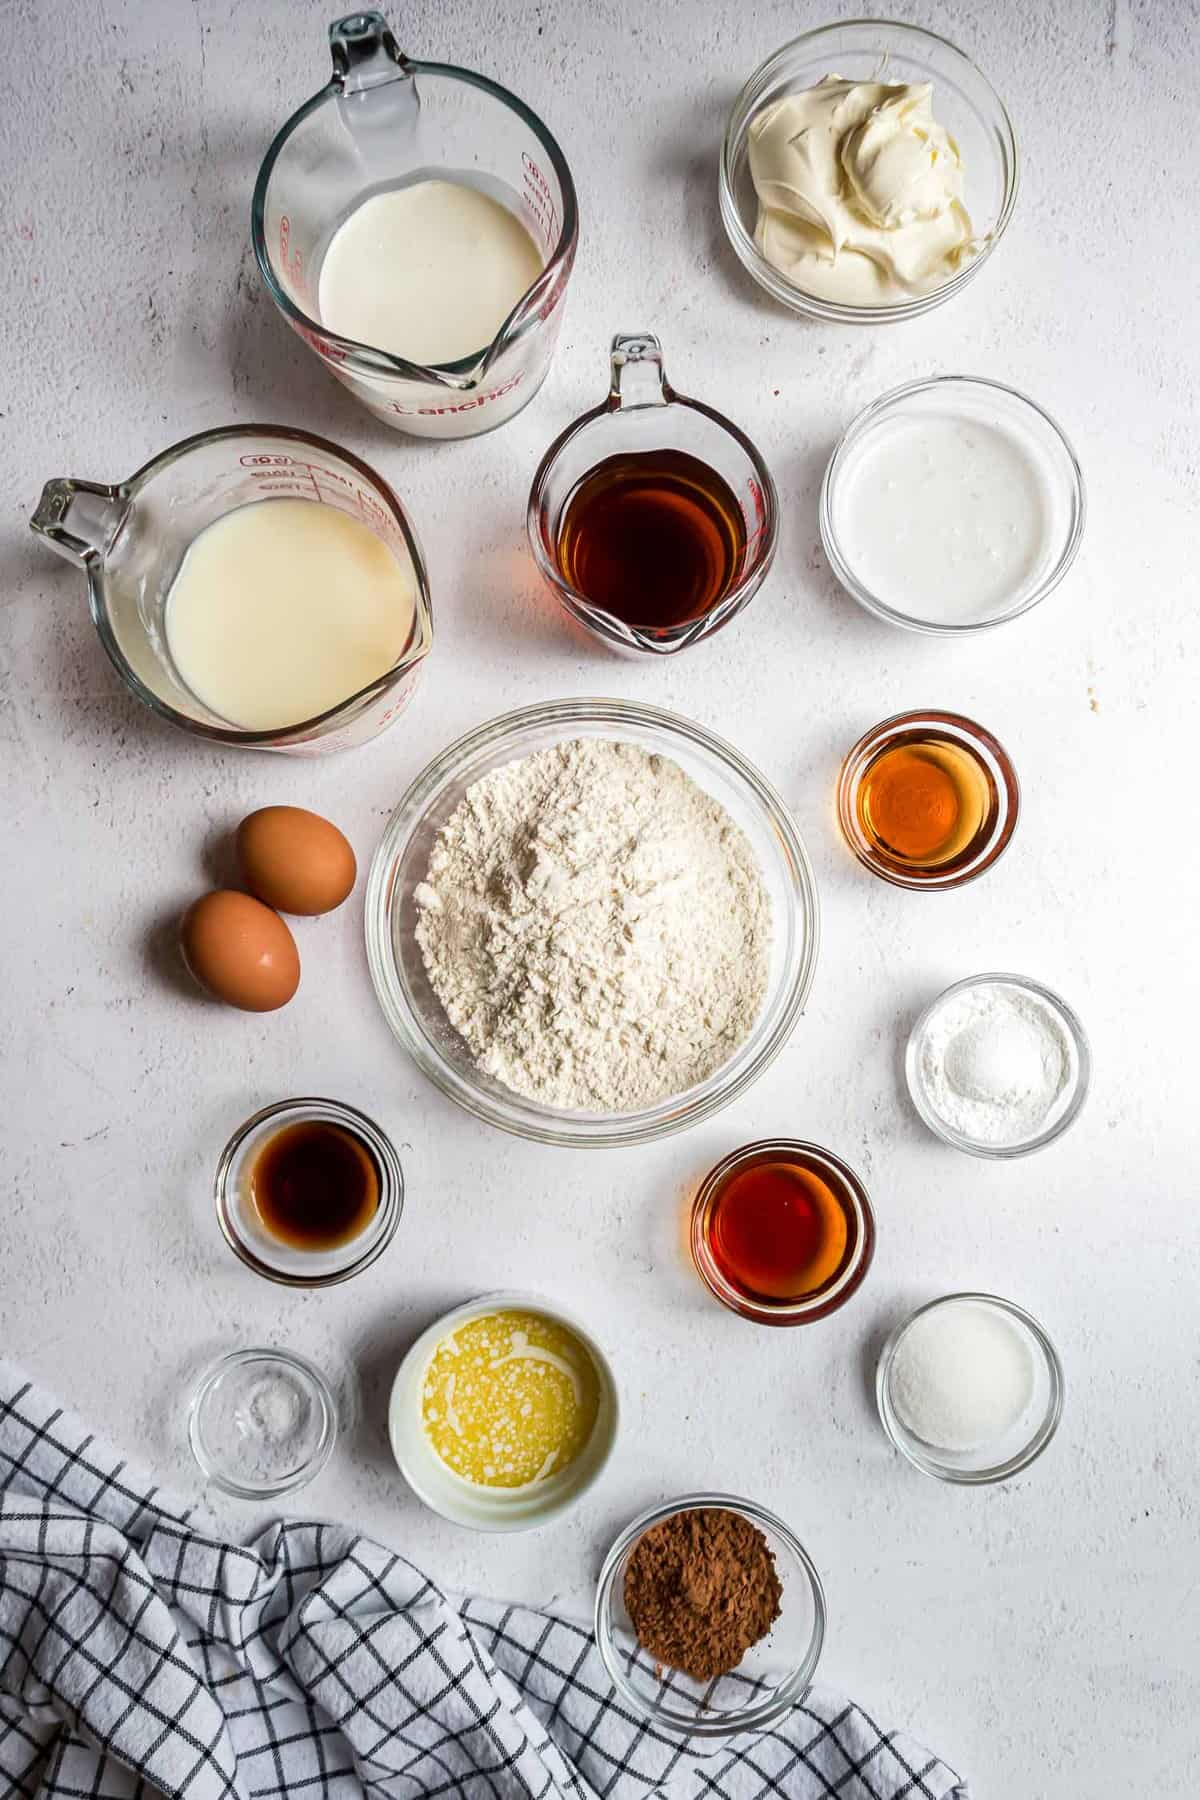 Overhead view of ingredients needed to make pancakes with mascarpone filling.